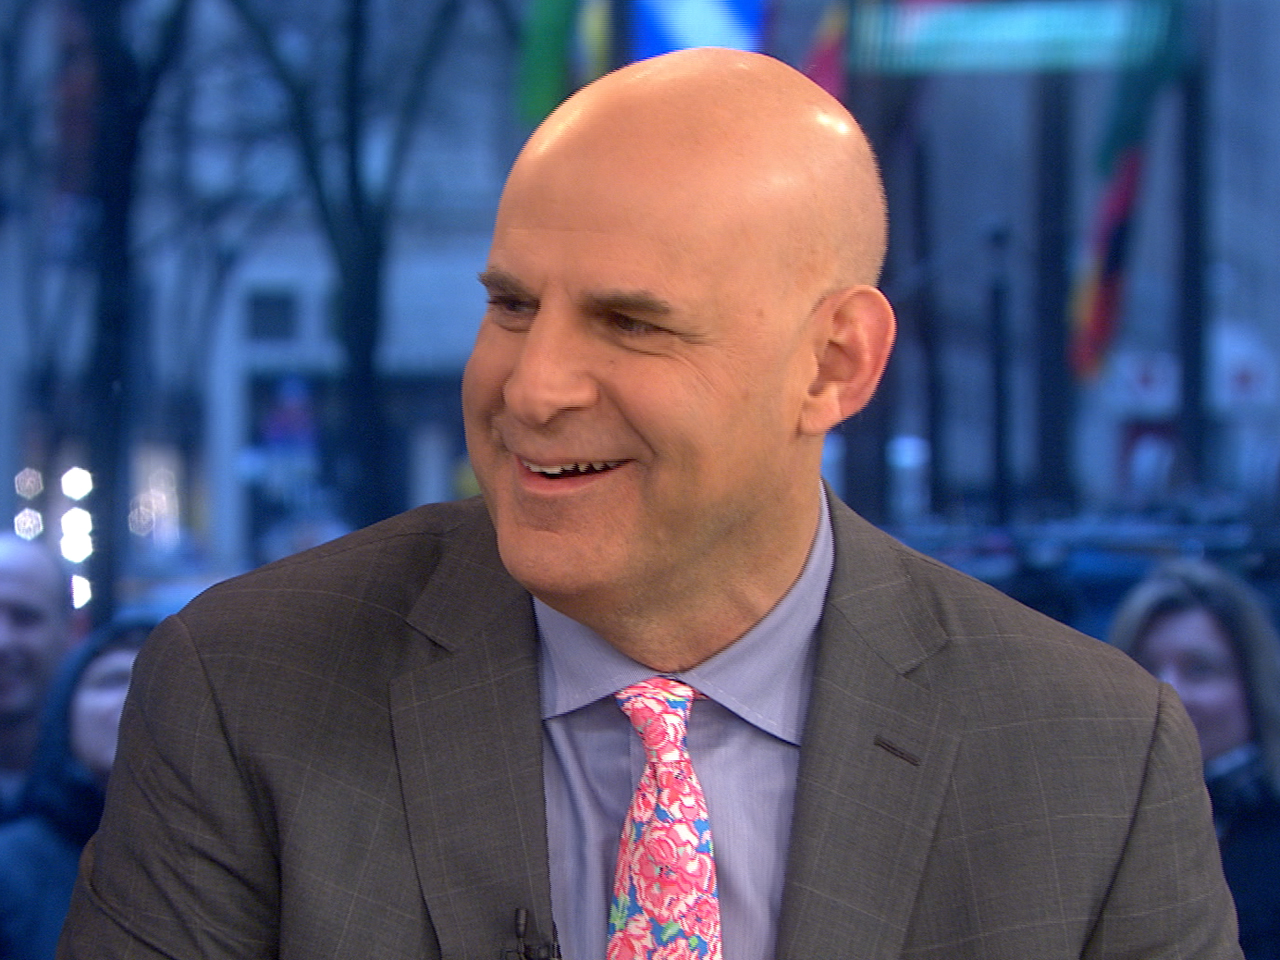 Harlan Coben's new book offers romance, thrills - TODAY.com